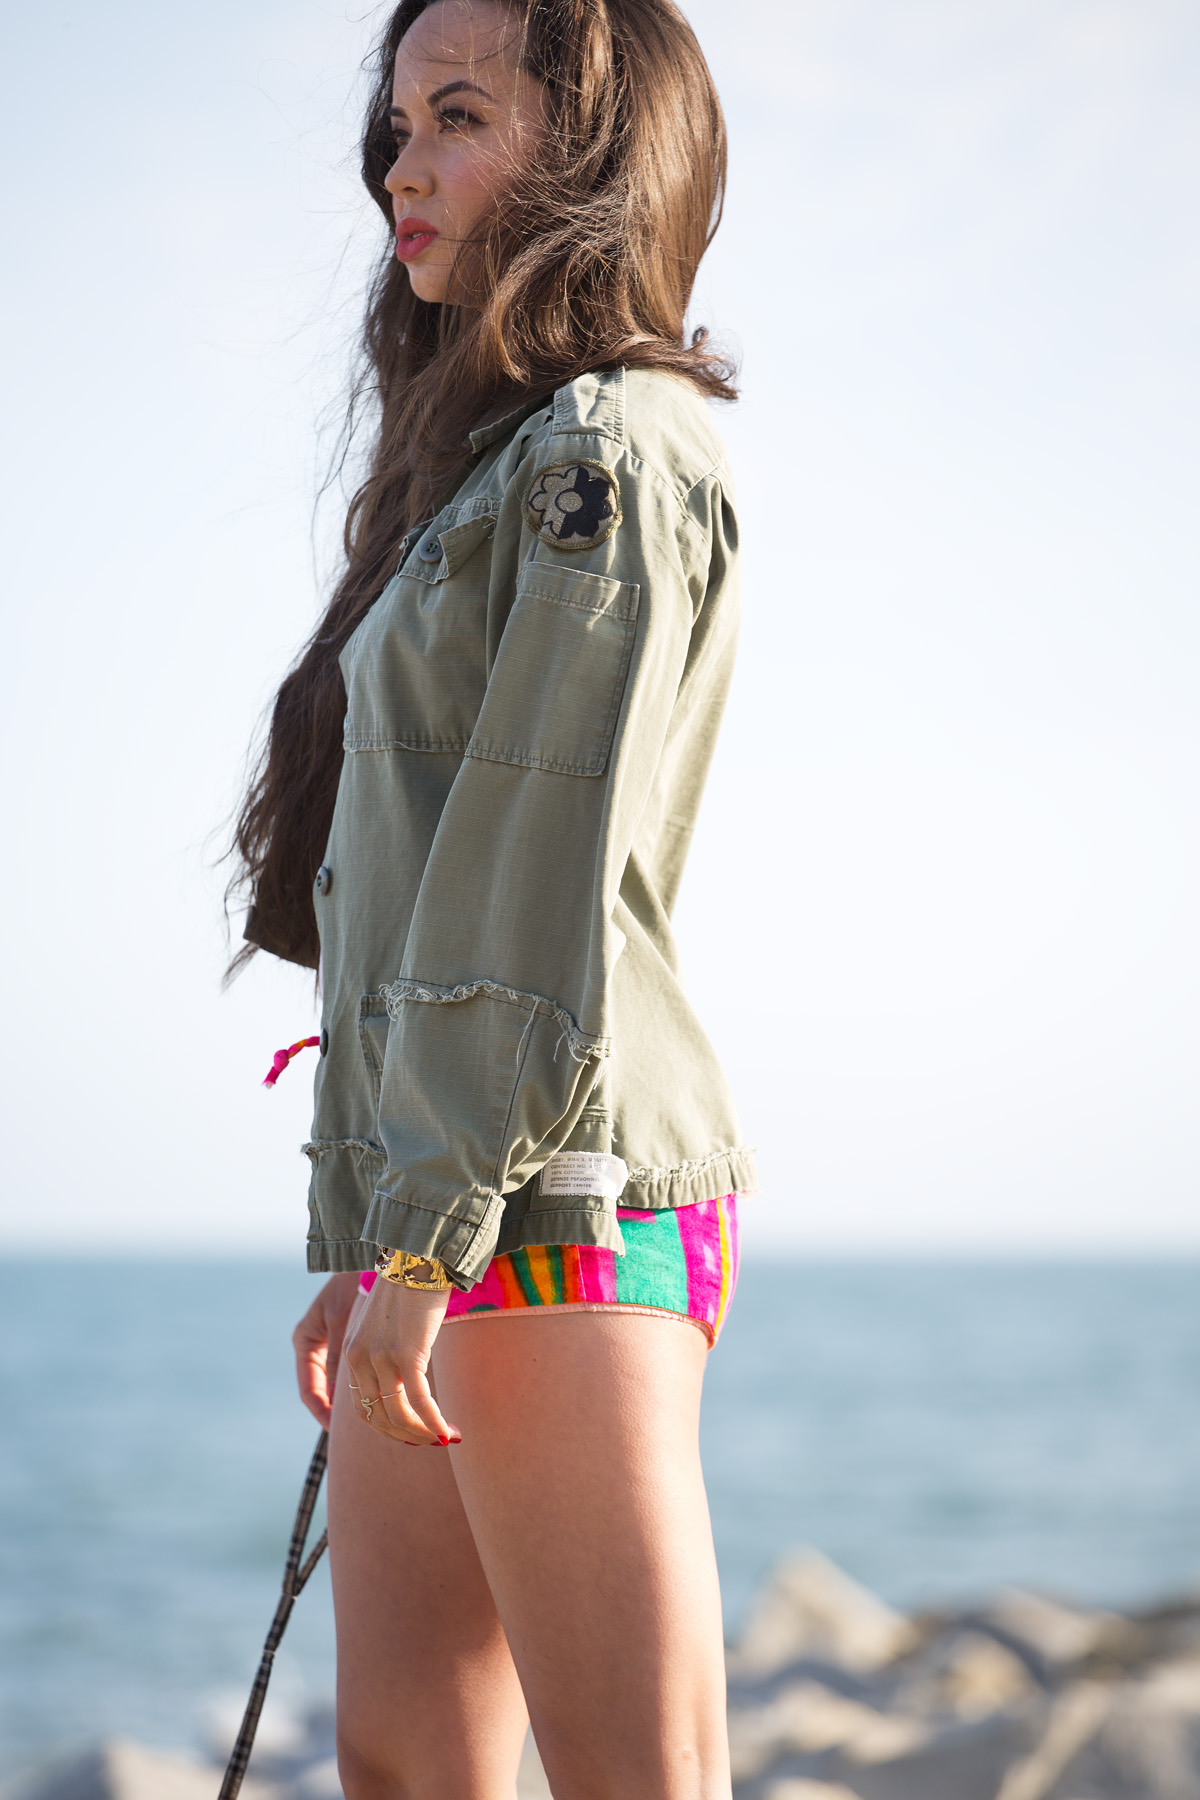 best festival style, best music festival style, coachella, coachella 2016, coachella style, coachella outfits, coachella model style, coachella fashion, festival outfits, music festival outfits, festival chic, model festival style, model music festival, womens vintage army jacket, womens vintage army coat, womens cropped army jacket, womens army jacket, womens army coat, lna white shirt, lna deep v tee, lna white deep v tee, deep vneck white, vintage bright hot pants, vintage bright short shorts, bright hot pants, bright short shorts, model vintage hot pants, model hot pants, model short shorts, anine bing booties, anine bing tan booties, anine bing fringe, anine bing booties, anine bing booties, fringe booties, fringe tan booties, fringe flat booties, fringe flat tan booties, model dog beach, eurasian models, eurasian model, will rogers beach, will rogers beach photo shoot, will rogers beach modeling, modeling beach, model beach, model dog beach, los angeles beaches, best la beach, best la beaches, best los angeles beach, best los angeles beaches, hair beach, michele lobosco, photographer michele lobosco, street style, model street style, beach los angeles fashion, beach fashion, los angeles fashion, bodychain, gold bodychain, body chain, gold body chain, street style, street style la, street style los angeles, ootd, perfect blowout, model eyelashes, model perfect lips, artelier globe cuff, artelier map cuff, bodychain, body chain, gold bodychain, gold body chain, drybar, blushington, drybar cosmo blowout, drybar model, drybar blowout, blushington makeup, off duty model style, los angeles style, camille newbern, papillon, the la survival guide, la survival guide, thelasurvivalguide, lasurvivalguide, eurasian models, eurasian actresses, los angeles fashion blogs, los angeles style blogs, shopping la, shopping los angeles, modeling la, modeling los angeles, long hair blowout, smile model, modeling smile, dog smile, papillon, papillon dog, los angeles photo shoot, model on dog walk, dog and model, model red lips, red lips, perfect red lipstick